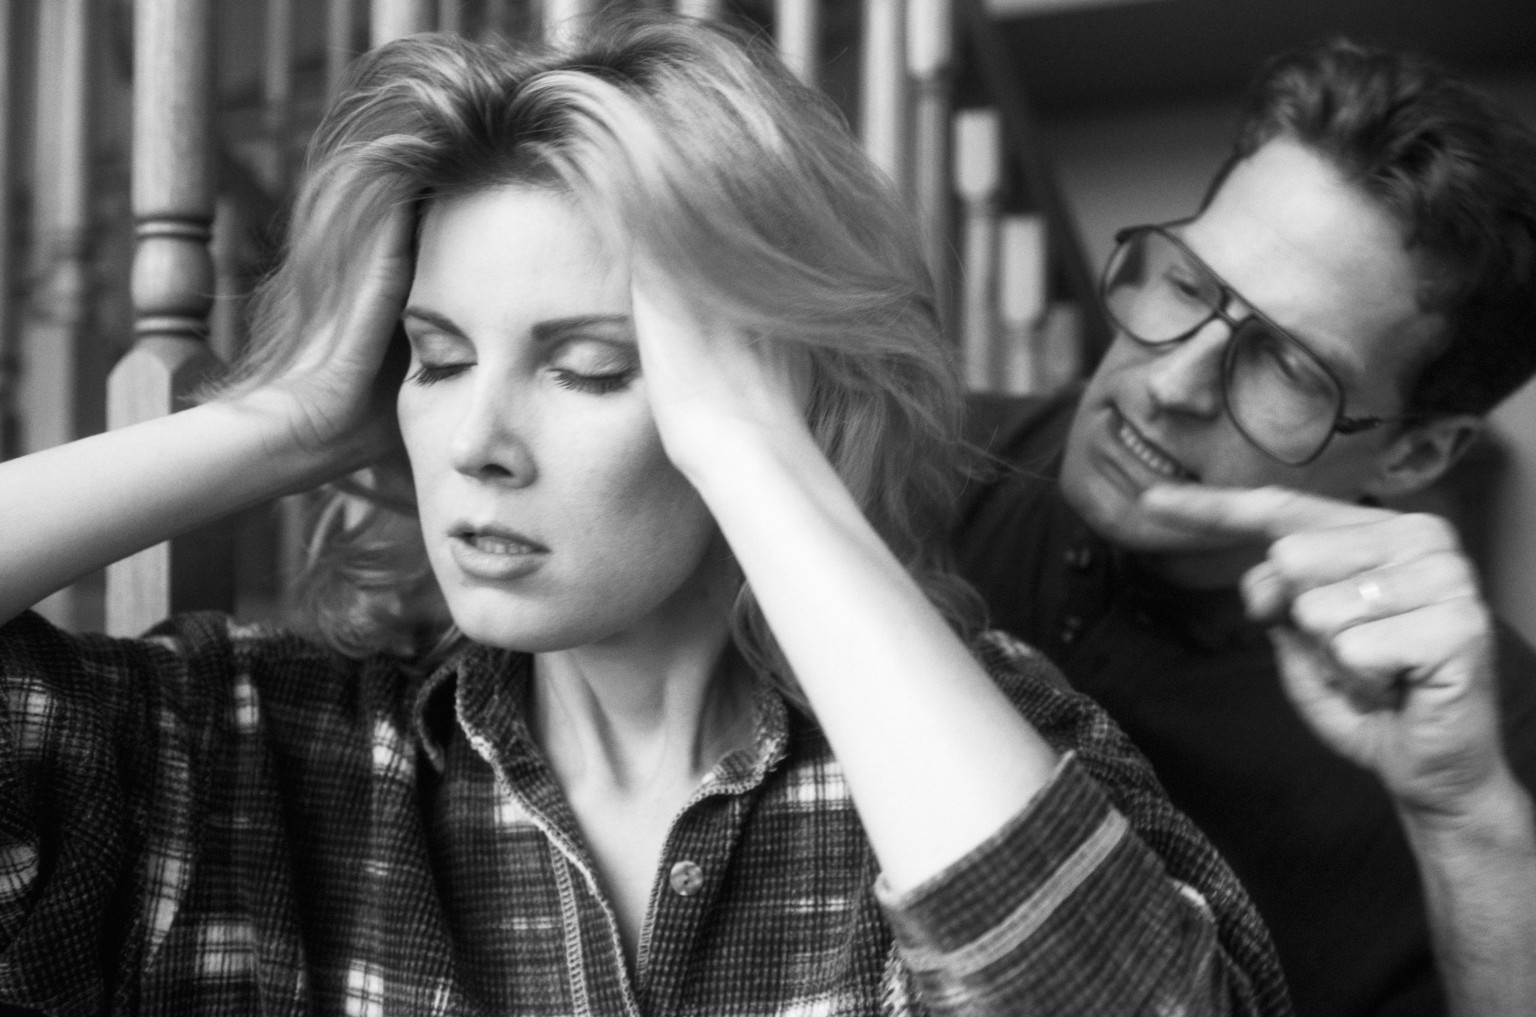 how to help a woman in an emotionally abusive relationship